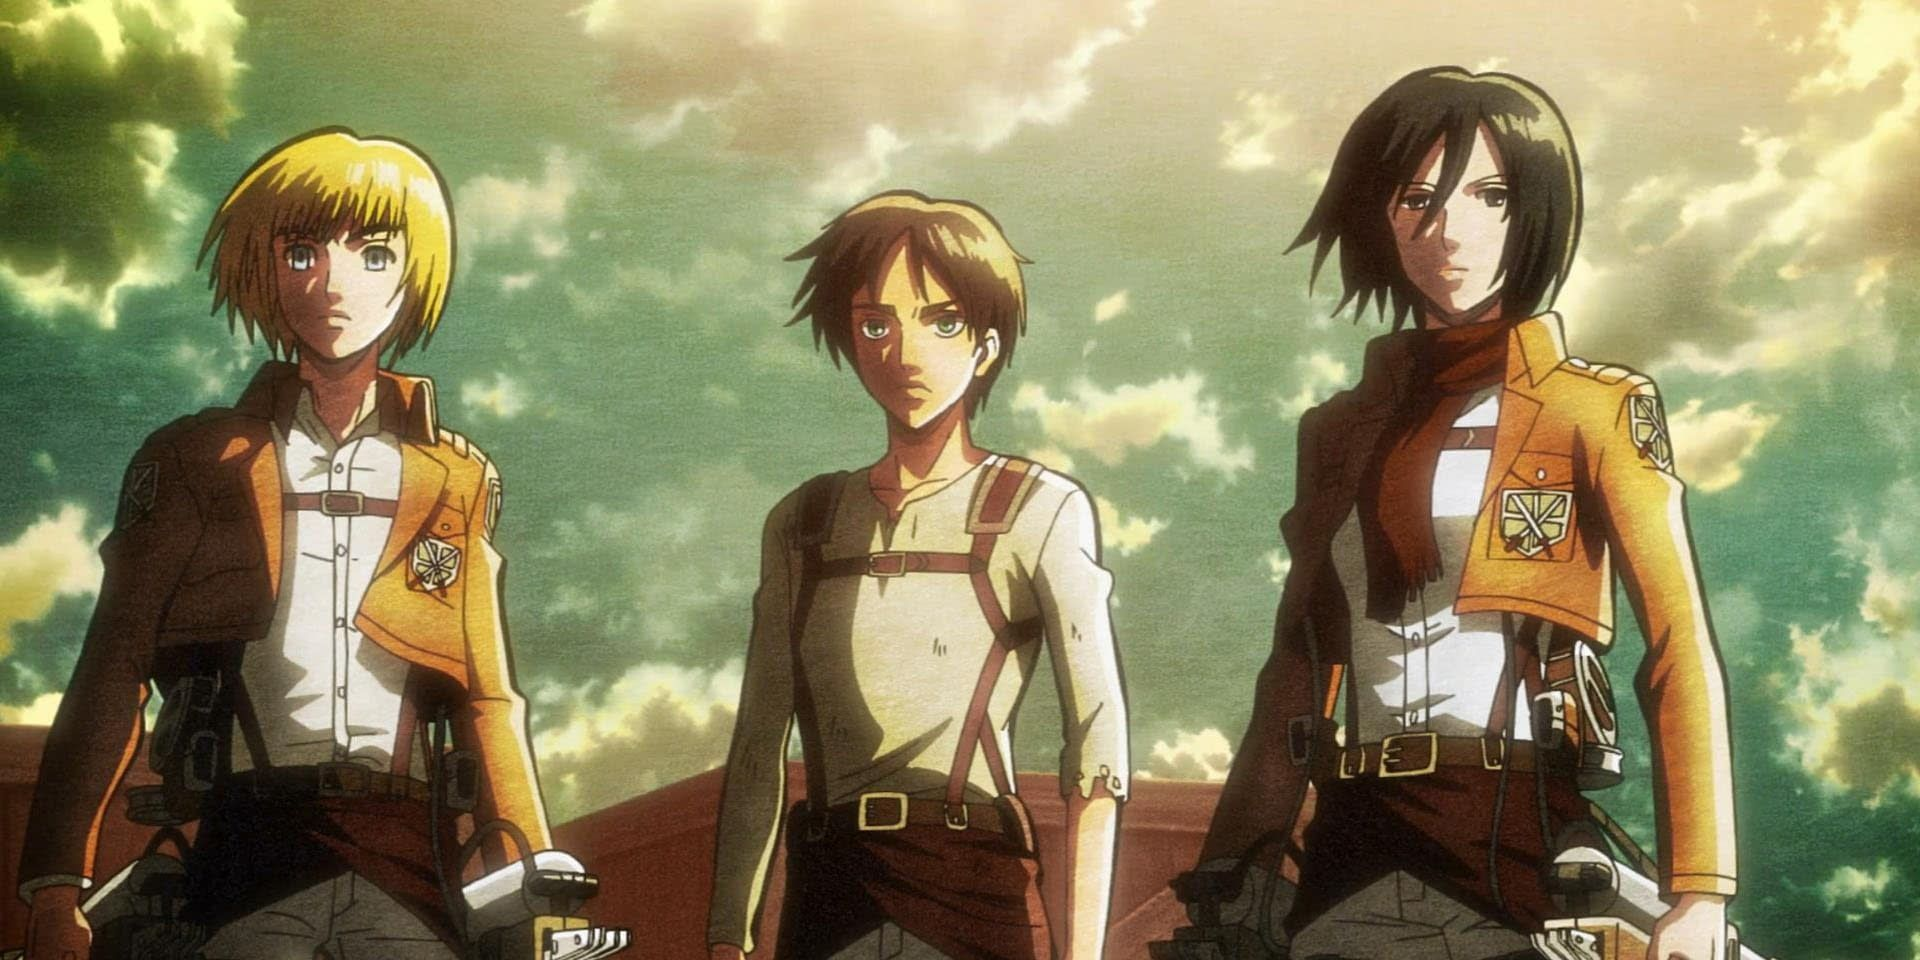 Why You Should Be Excited For Attack On Titan Season 4 | CBR